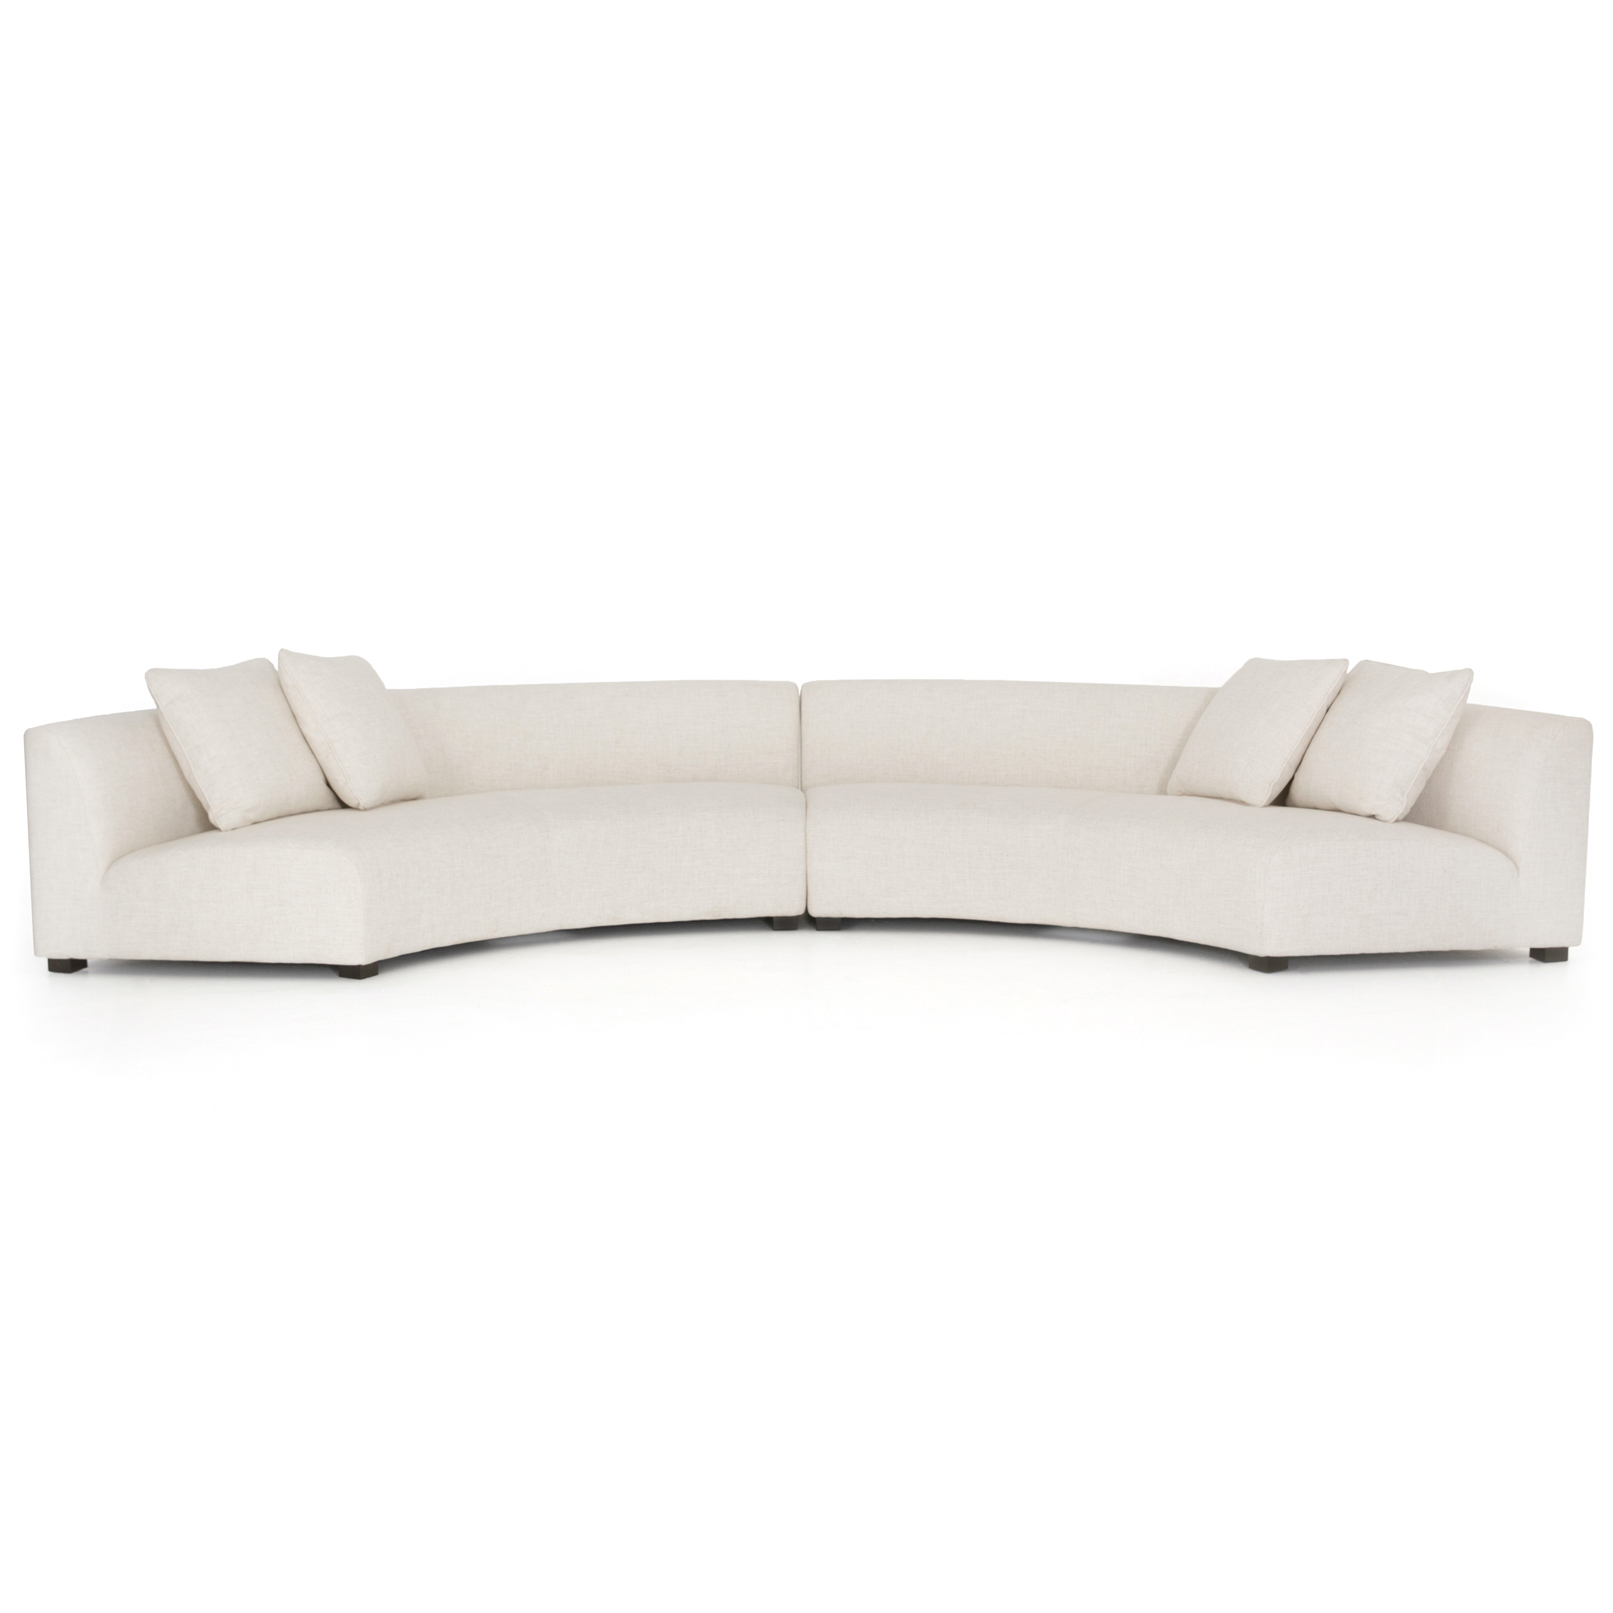 Zoe Modern Classic Curved Crescent Shape Cream Upholstered 2 Piece Sectional